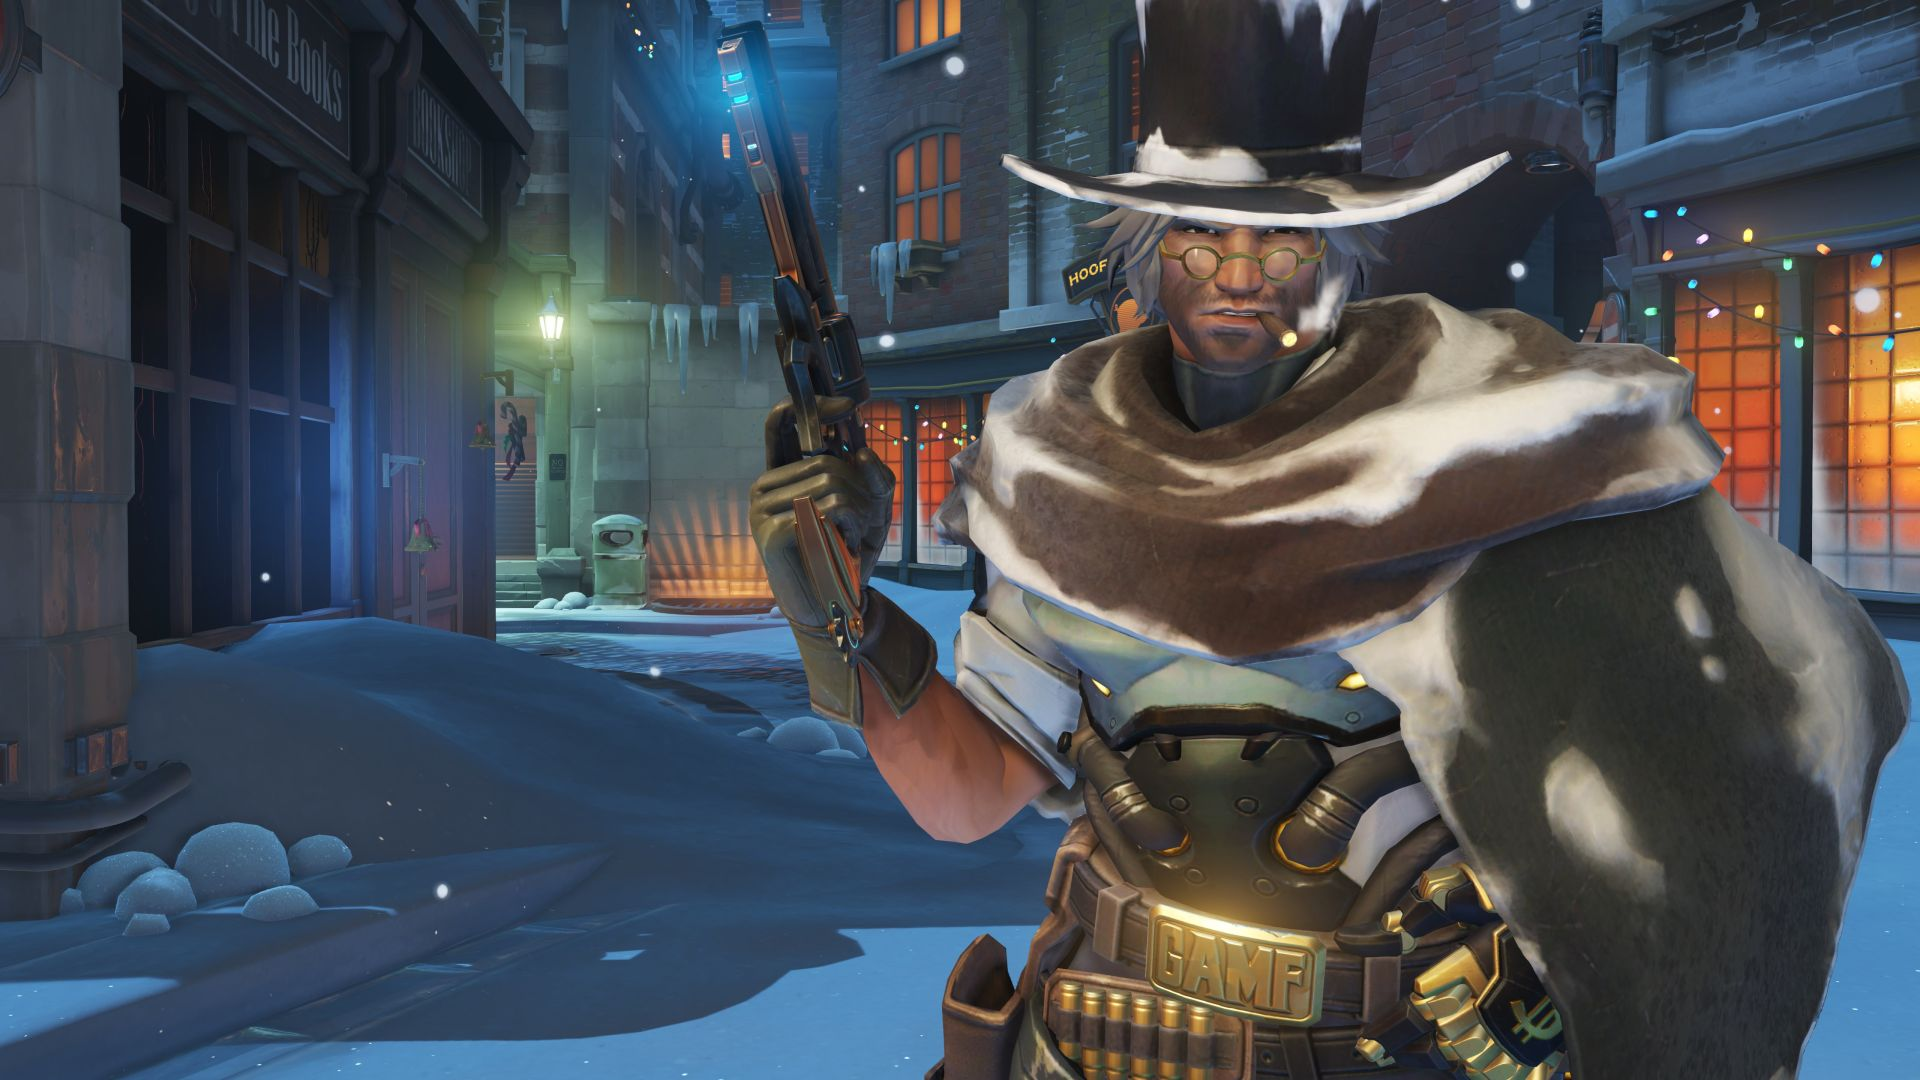 Winston Christmas Skin.Here S A Look At The Overwatch Winter Wonderland Skins Maps